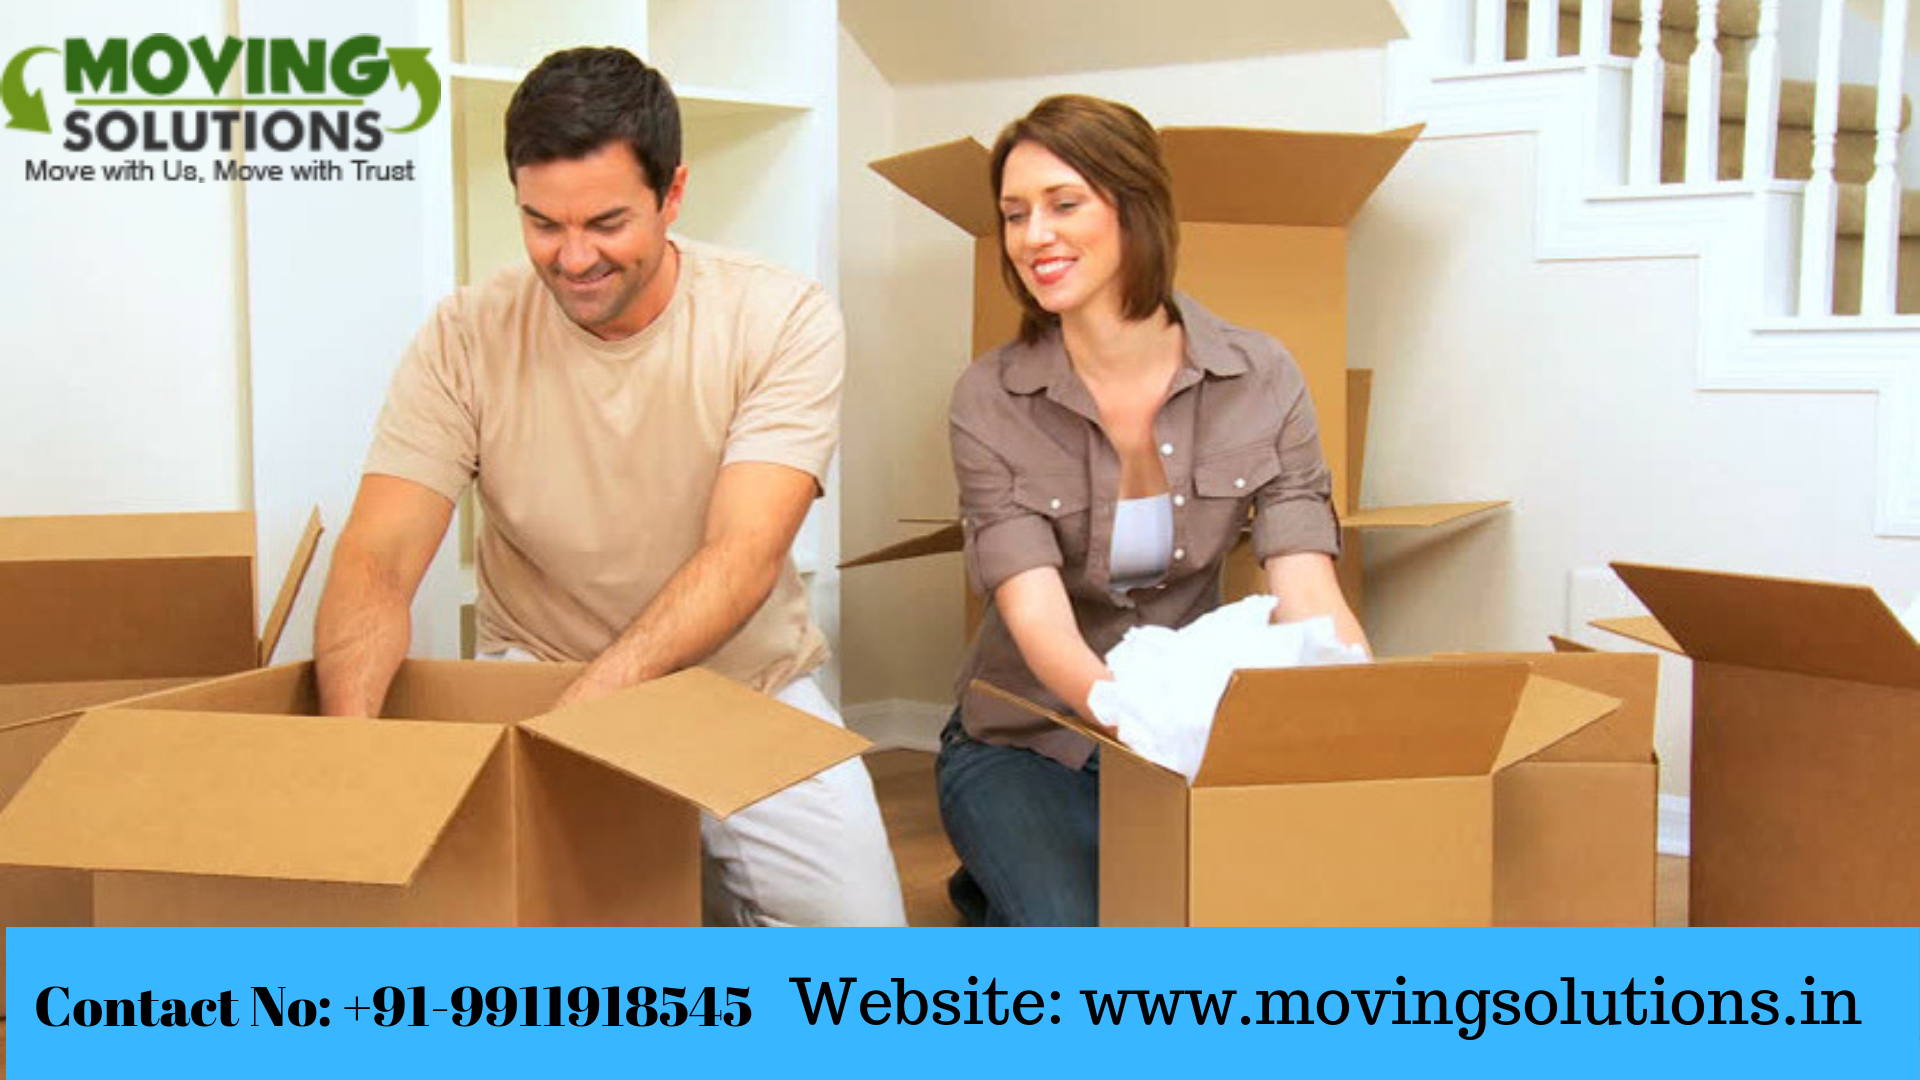 Packers and Movers Gurgaon to Pune, Gurgaon to Pune Shifting-Services-Moving & Storage Services-Gurgaon